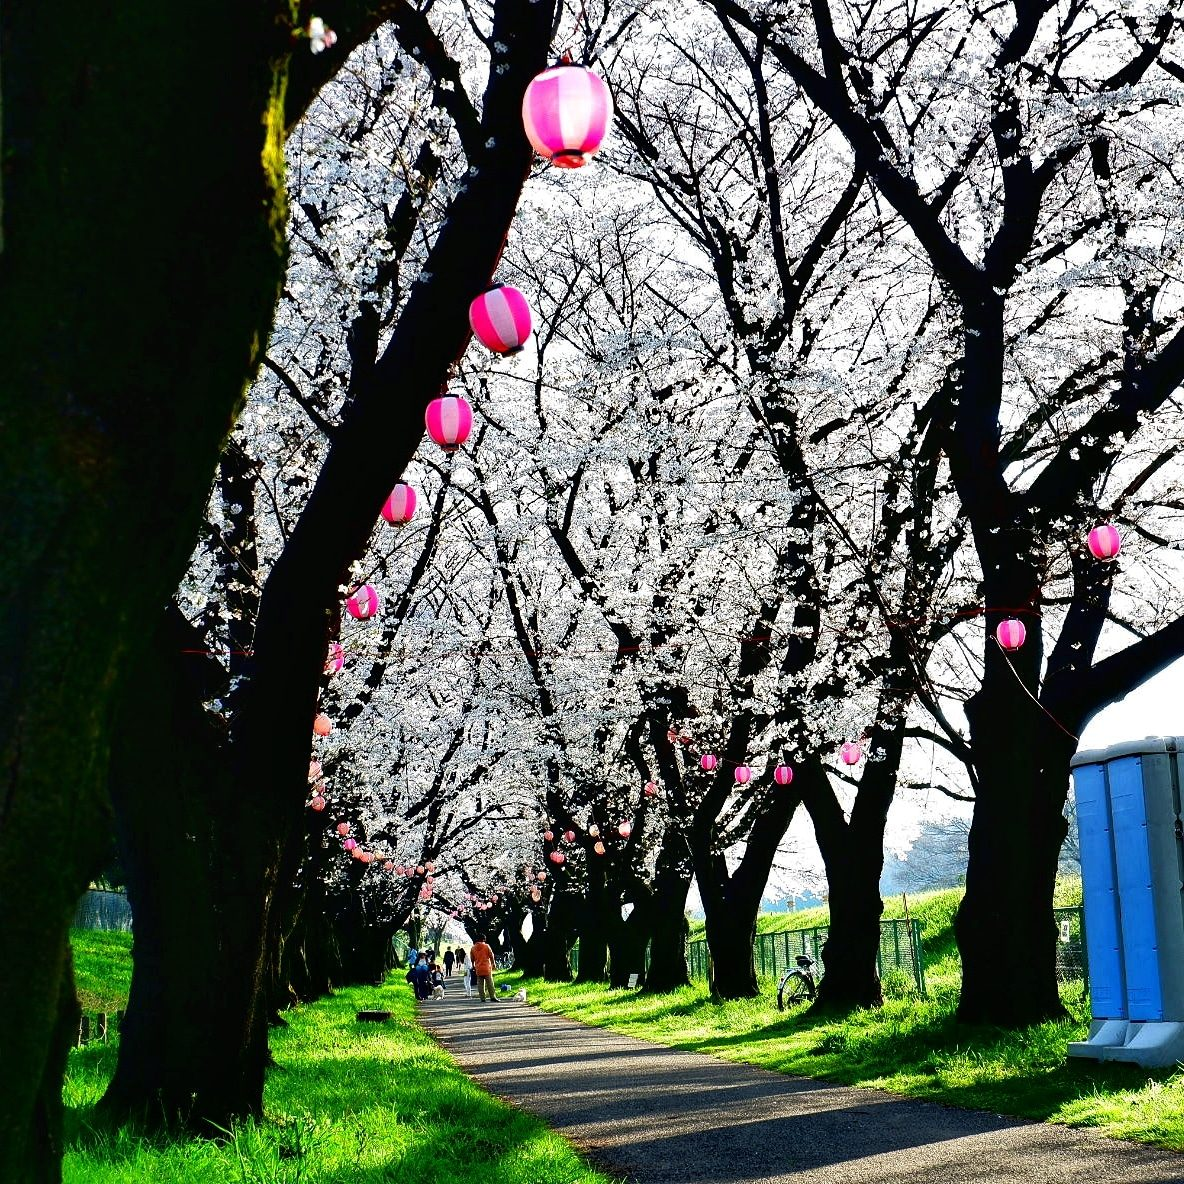 A bliss of serenity while walking on the pathway full of beautiful Sakura – M. Manes